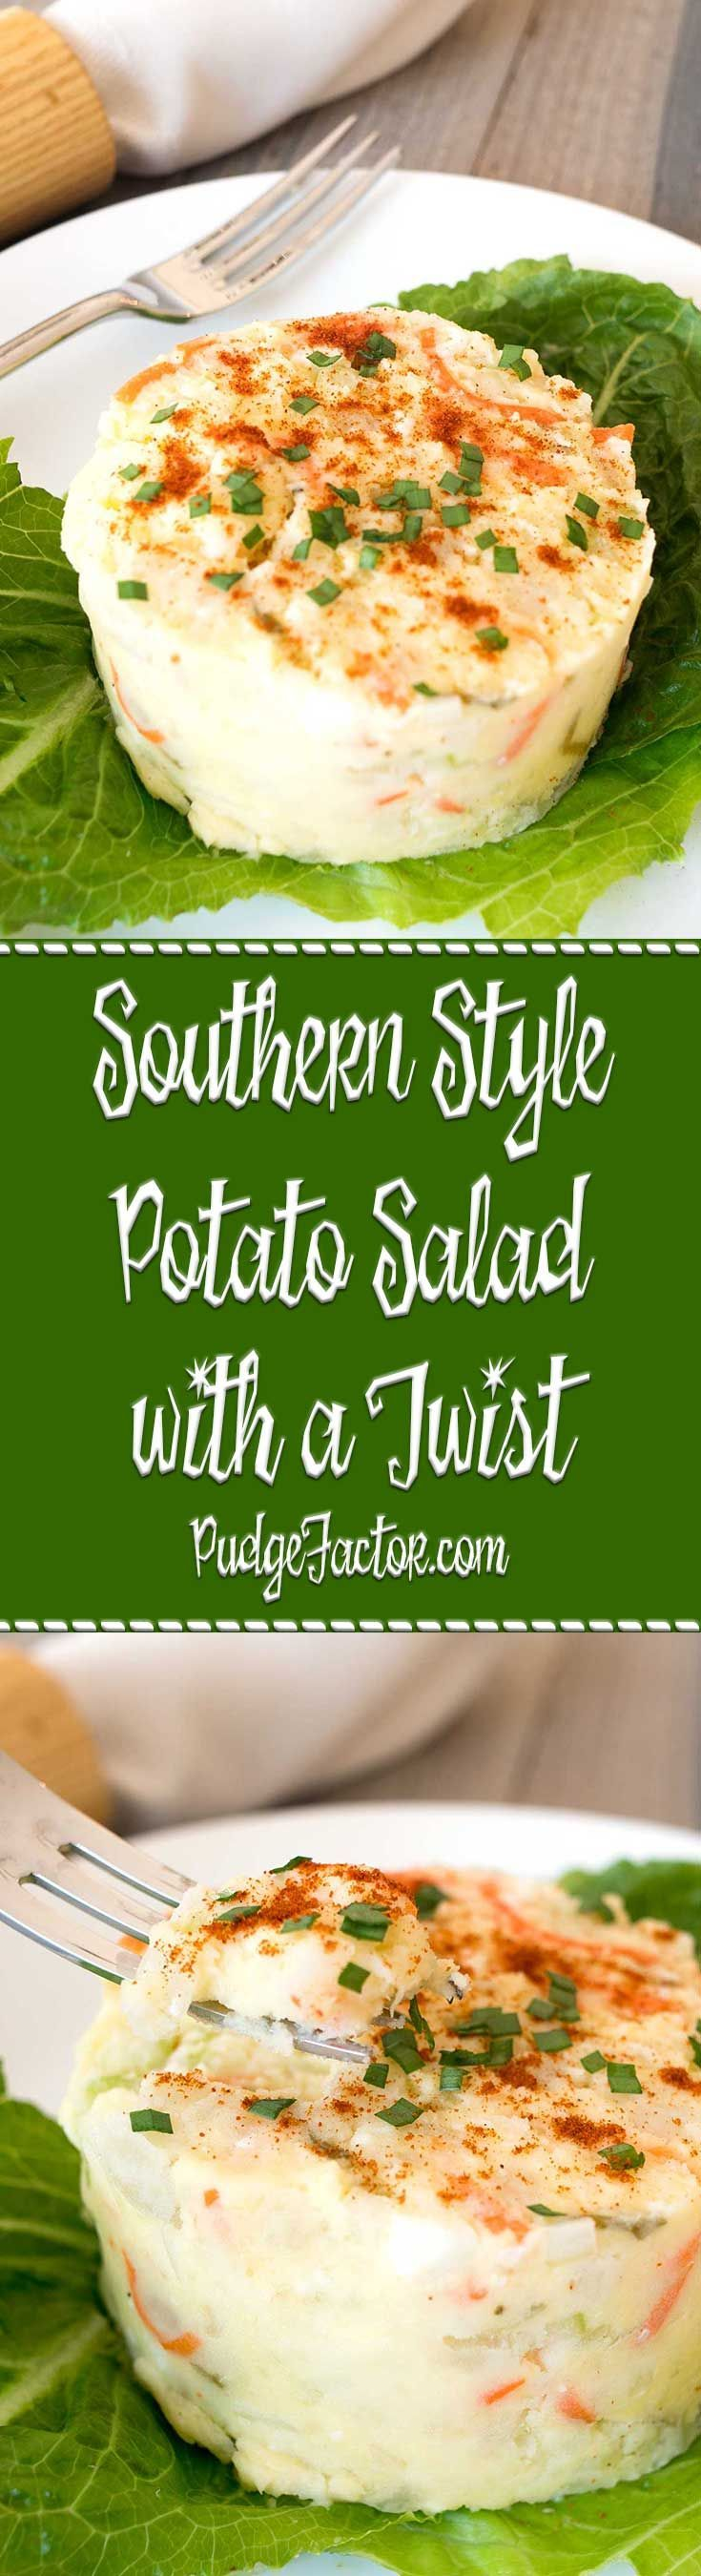 We do a lot of things right in the South, especially when it comes to Potato Salad! This Southern Style Potato Salad is perfect for Easter or anytime. via /c2king/